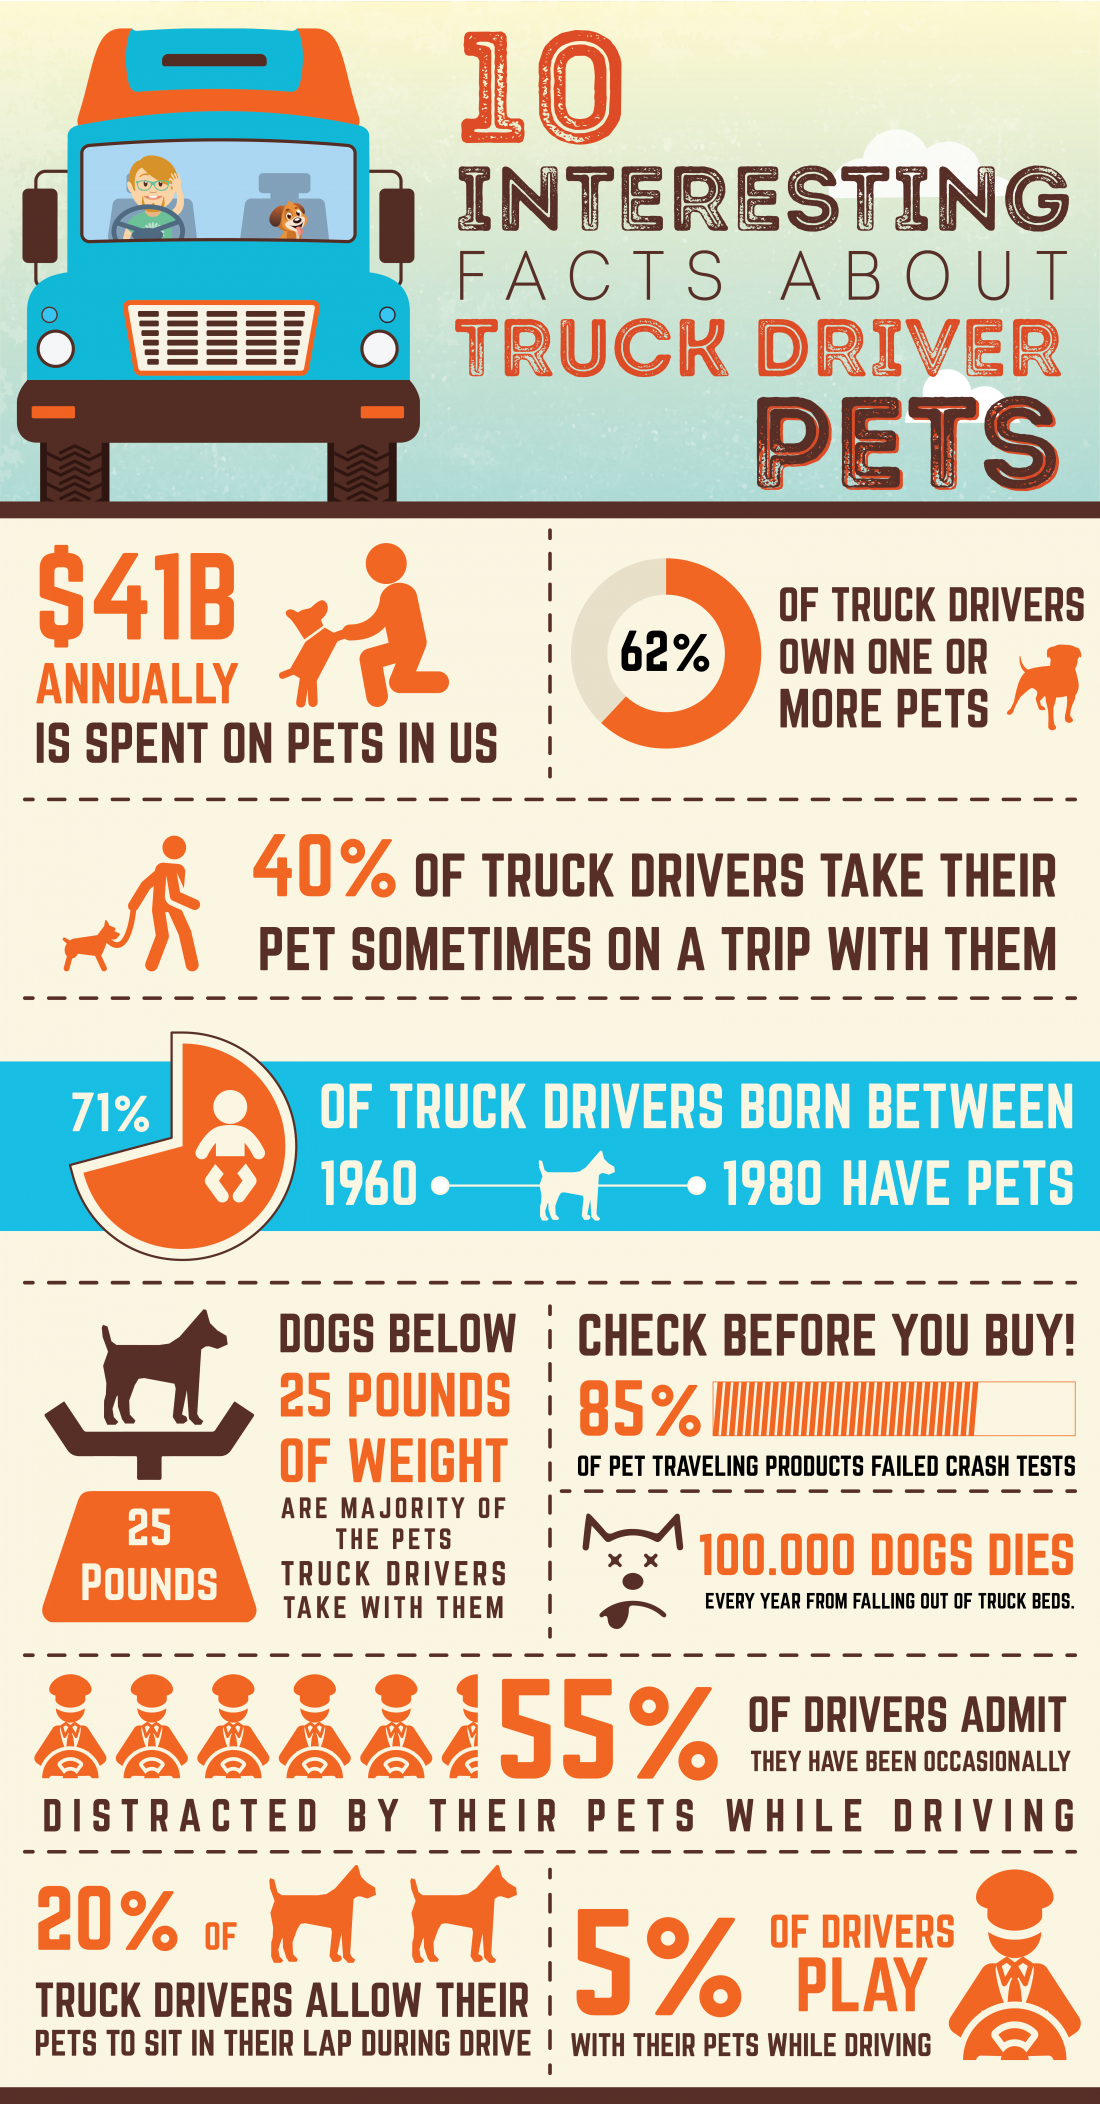 10 Interesting Cosmetology Facts: INFOGRAPHIC: 10 Interesting Facts About Truck Driver Pets